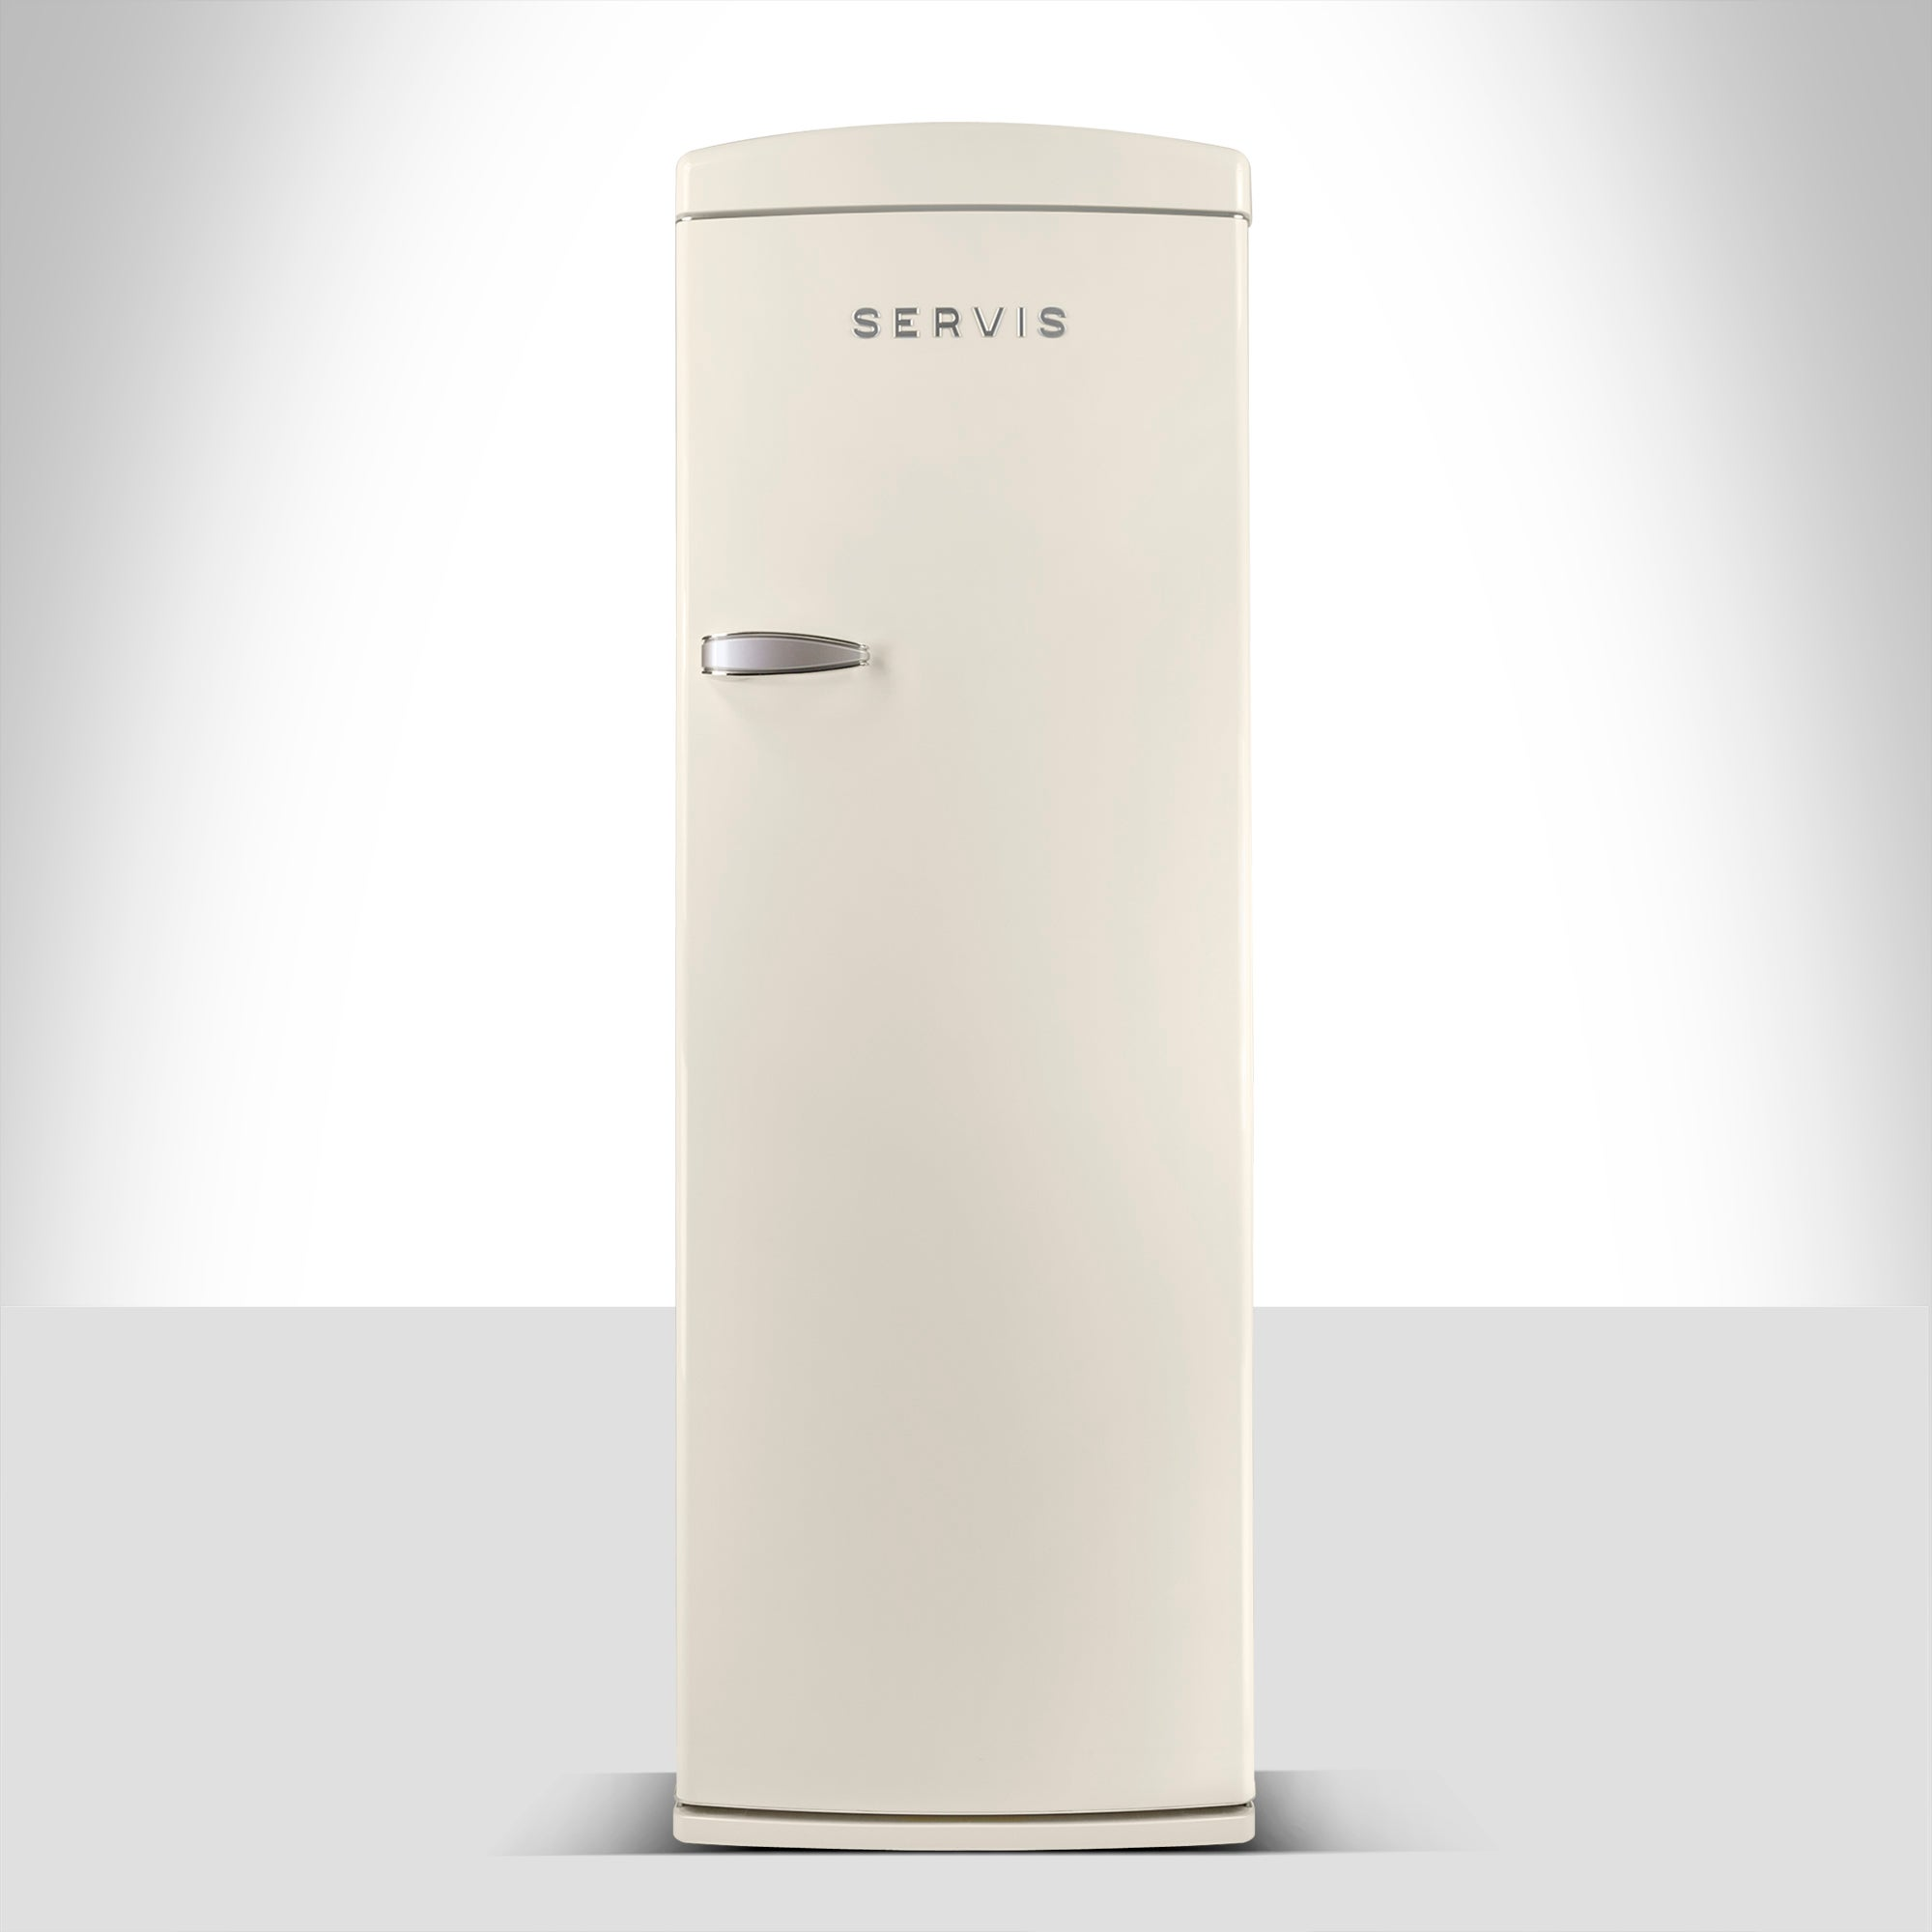 Servis R60170C Cream Retro Style Fridge